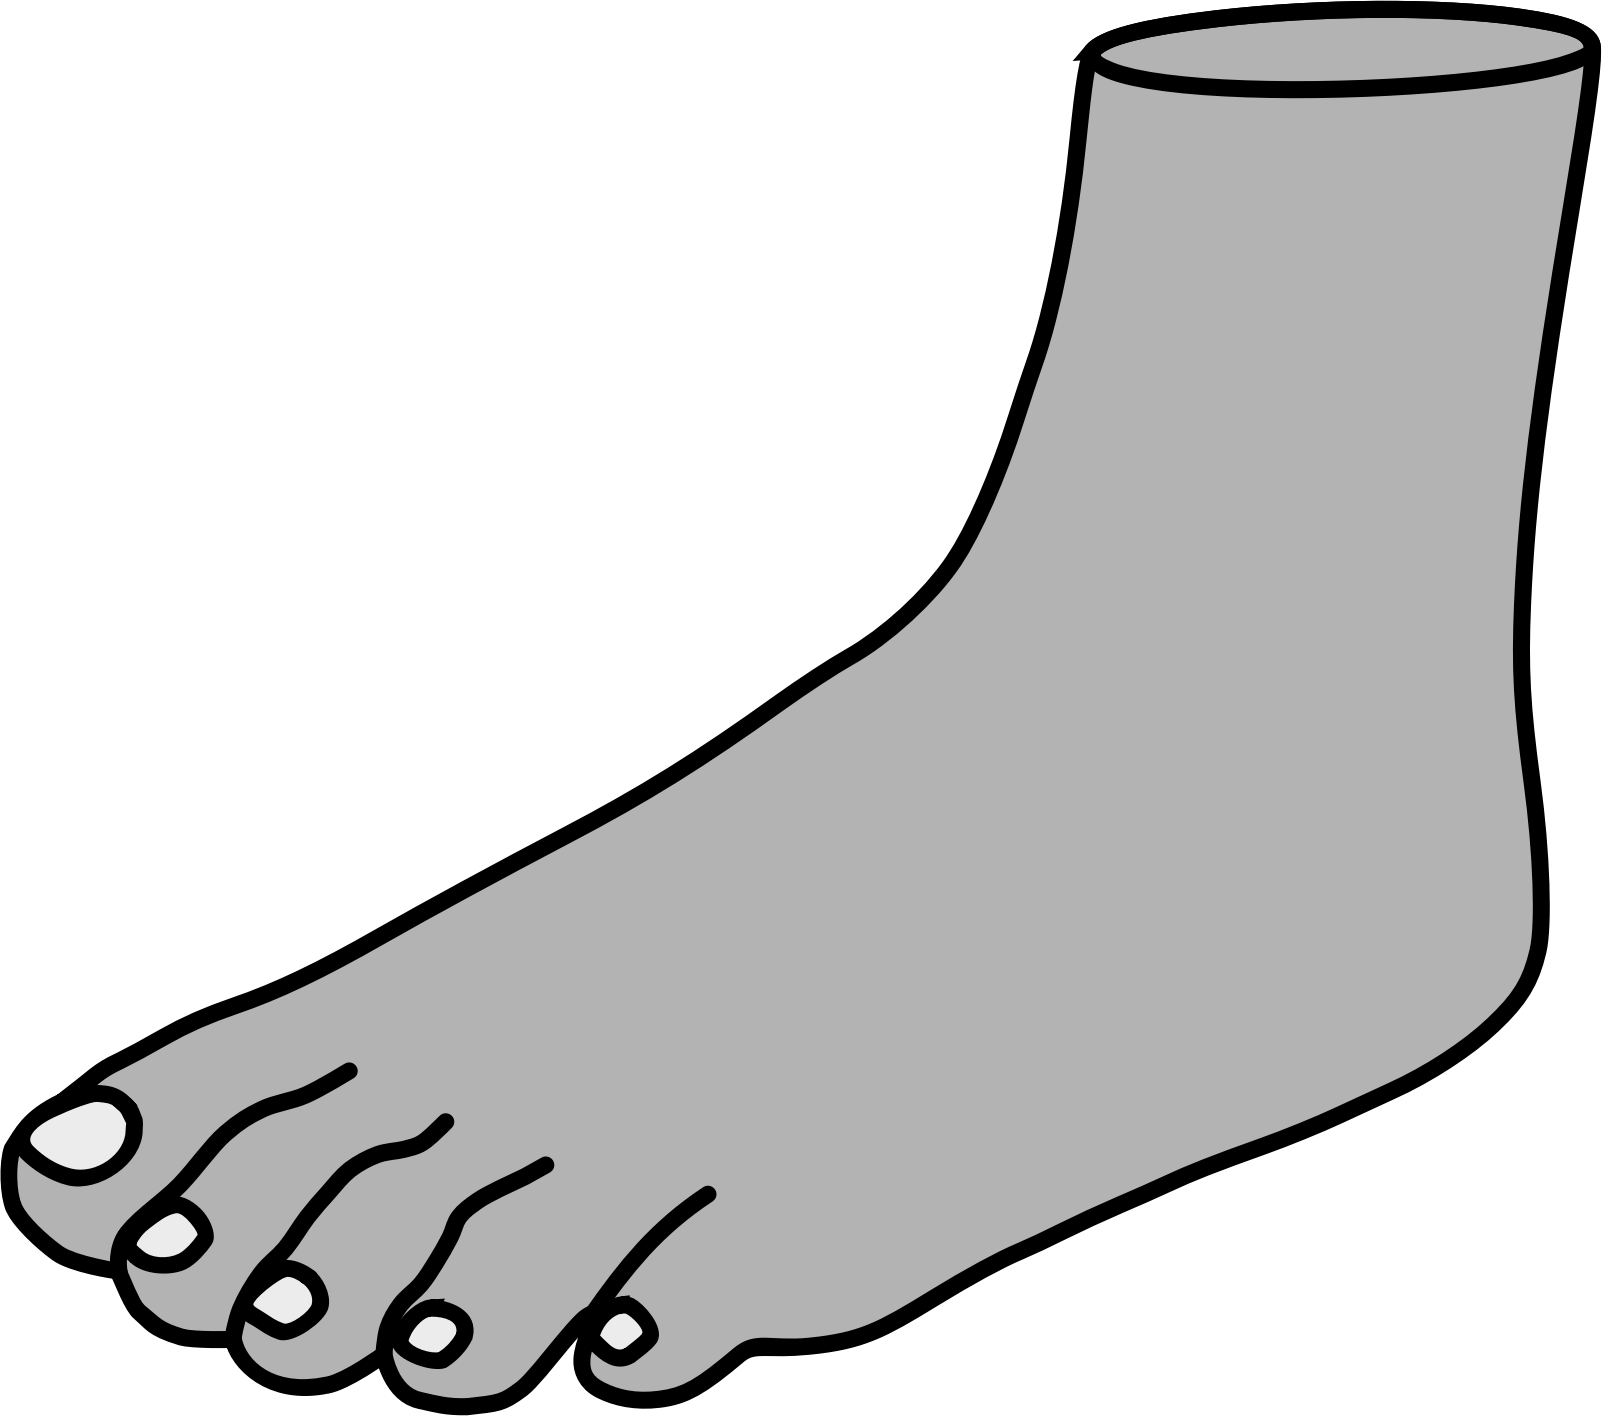 clipart freeuse library  collection of feet. Foot clipart black and white